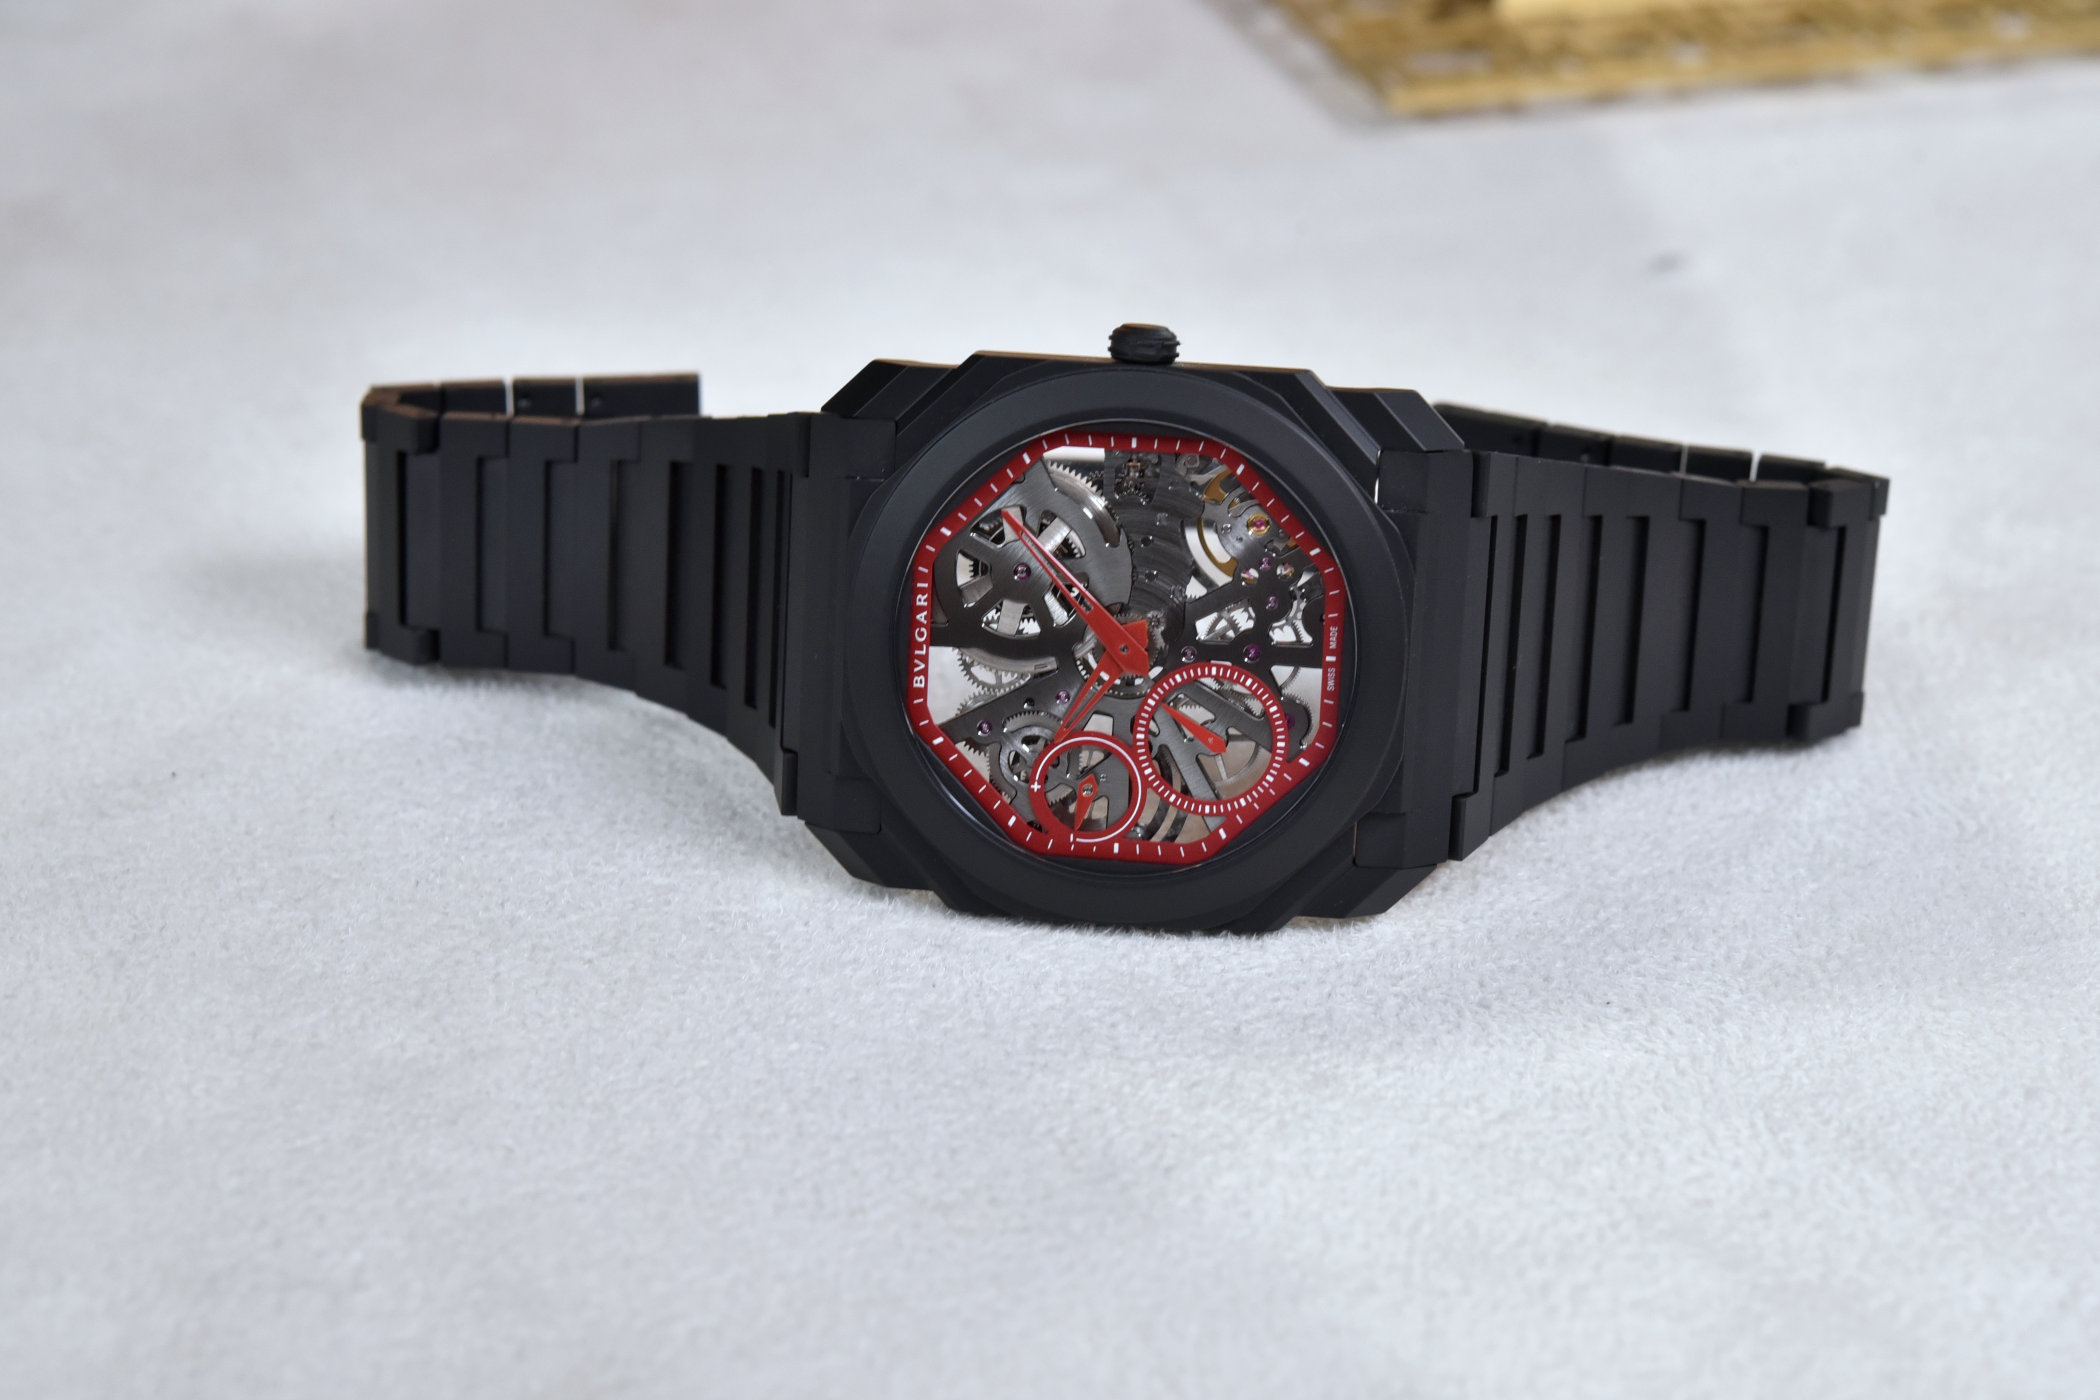 Bvlgari Octo Finissimo Skeleton Red Limited Edition Review 7